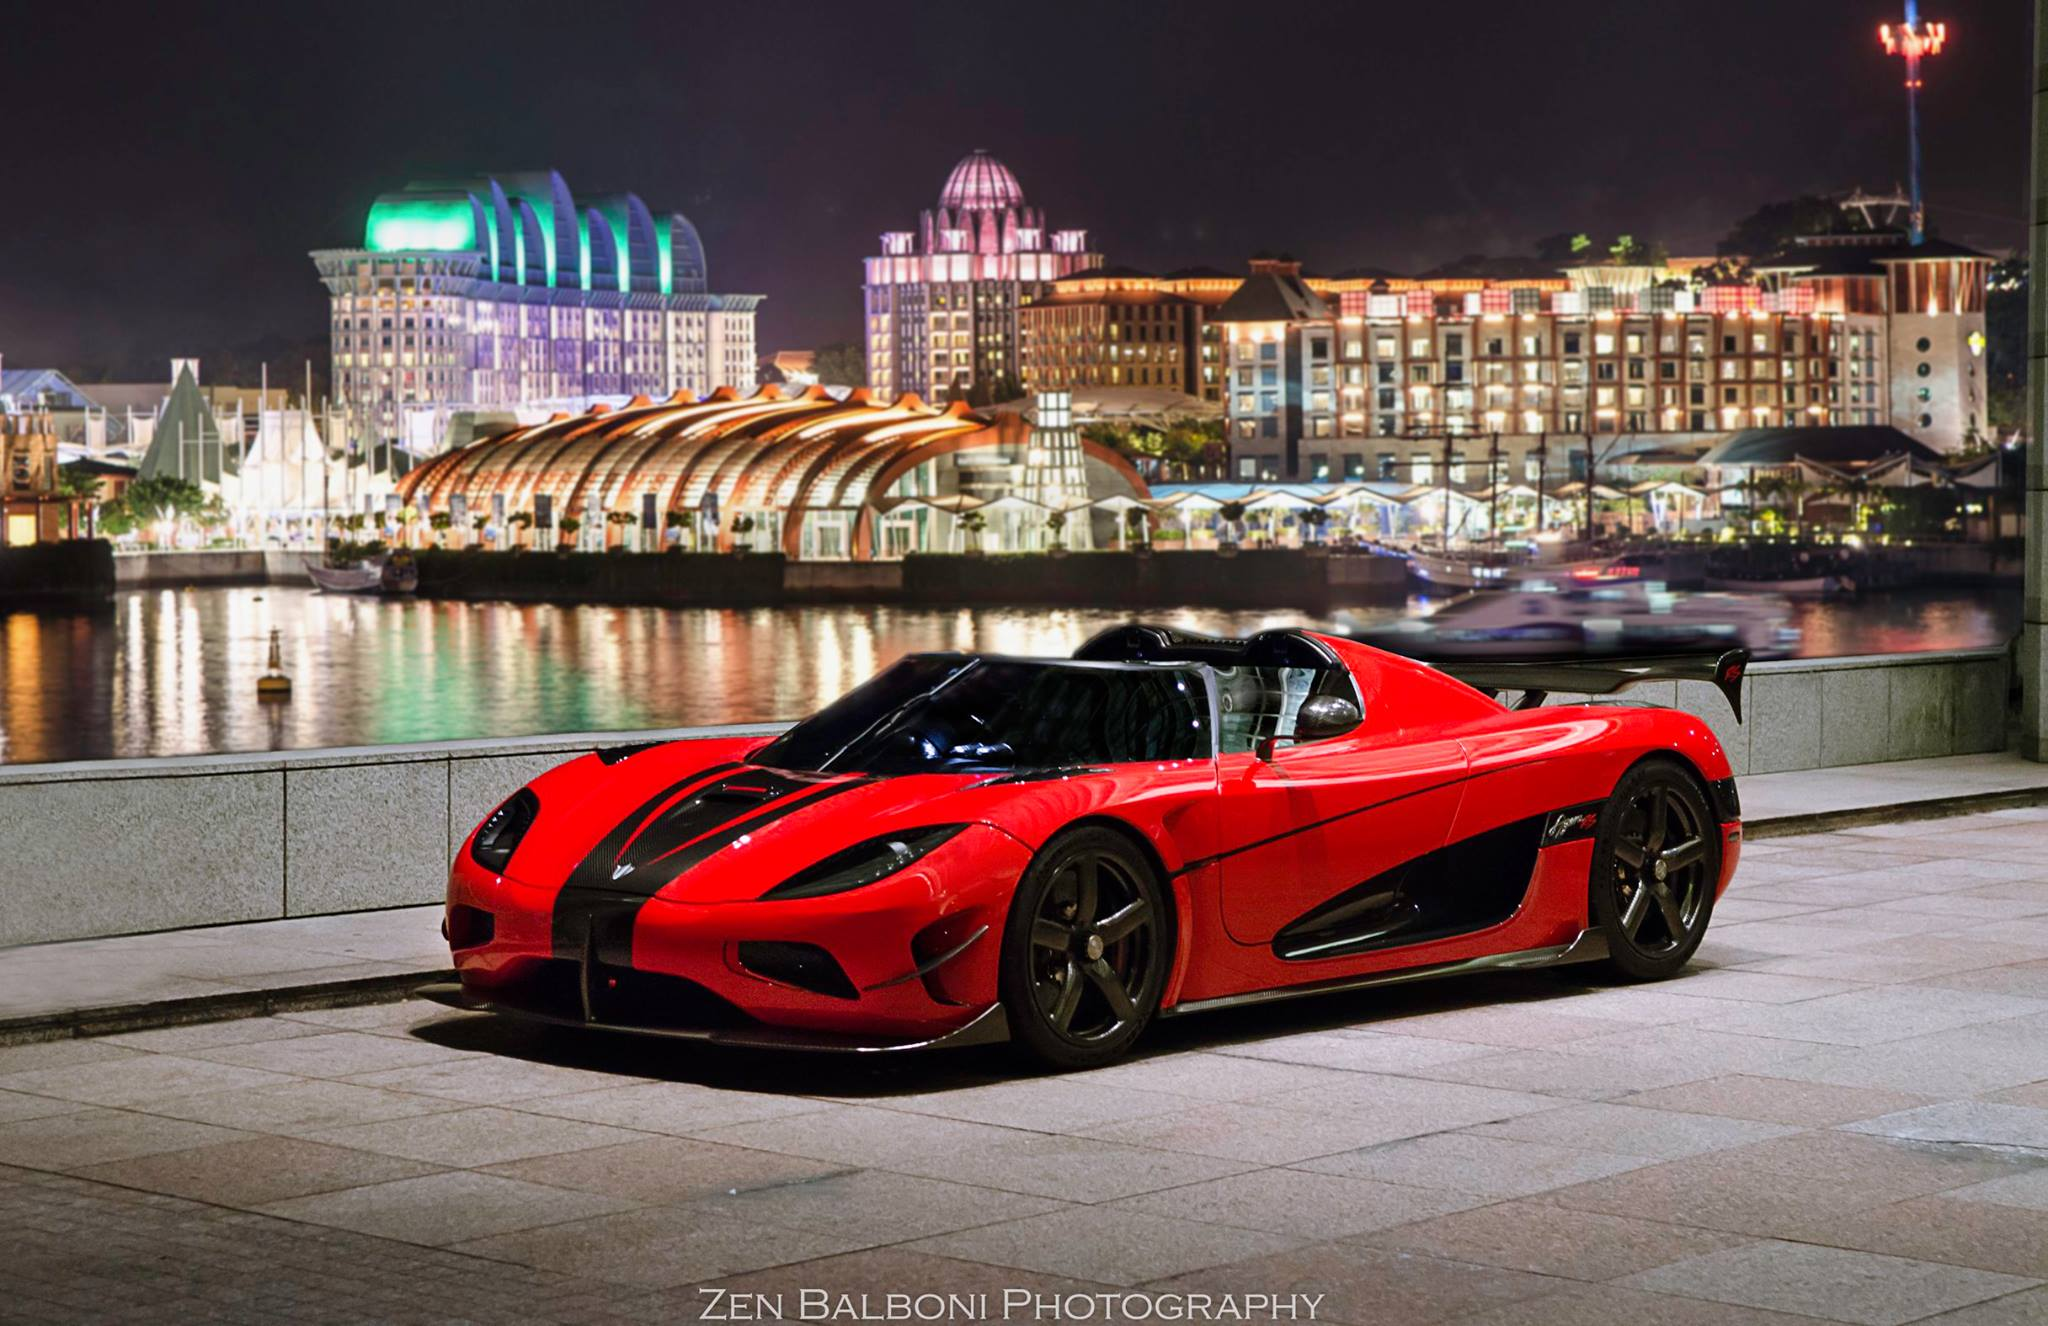 supercar hypercar with New Koenigsegg Agera Rs Delivered Singapore 5 Million on Lamborghini Aventador Driving Experience likewise 2013 Bmw M1 Supercar To Appear With A Different Outlook in addition Hennessey Venom F5 Aiming For 311 Mph Top Speed further 2016 W Motors Fenyr Supersport Colors likewise Lada Concept.